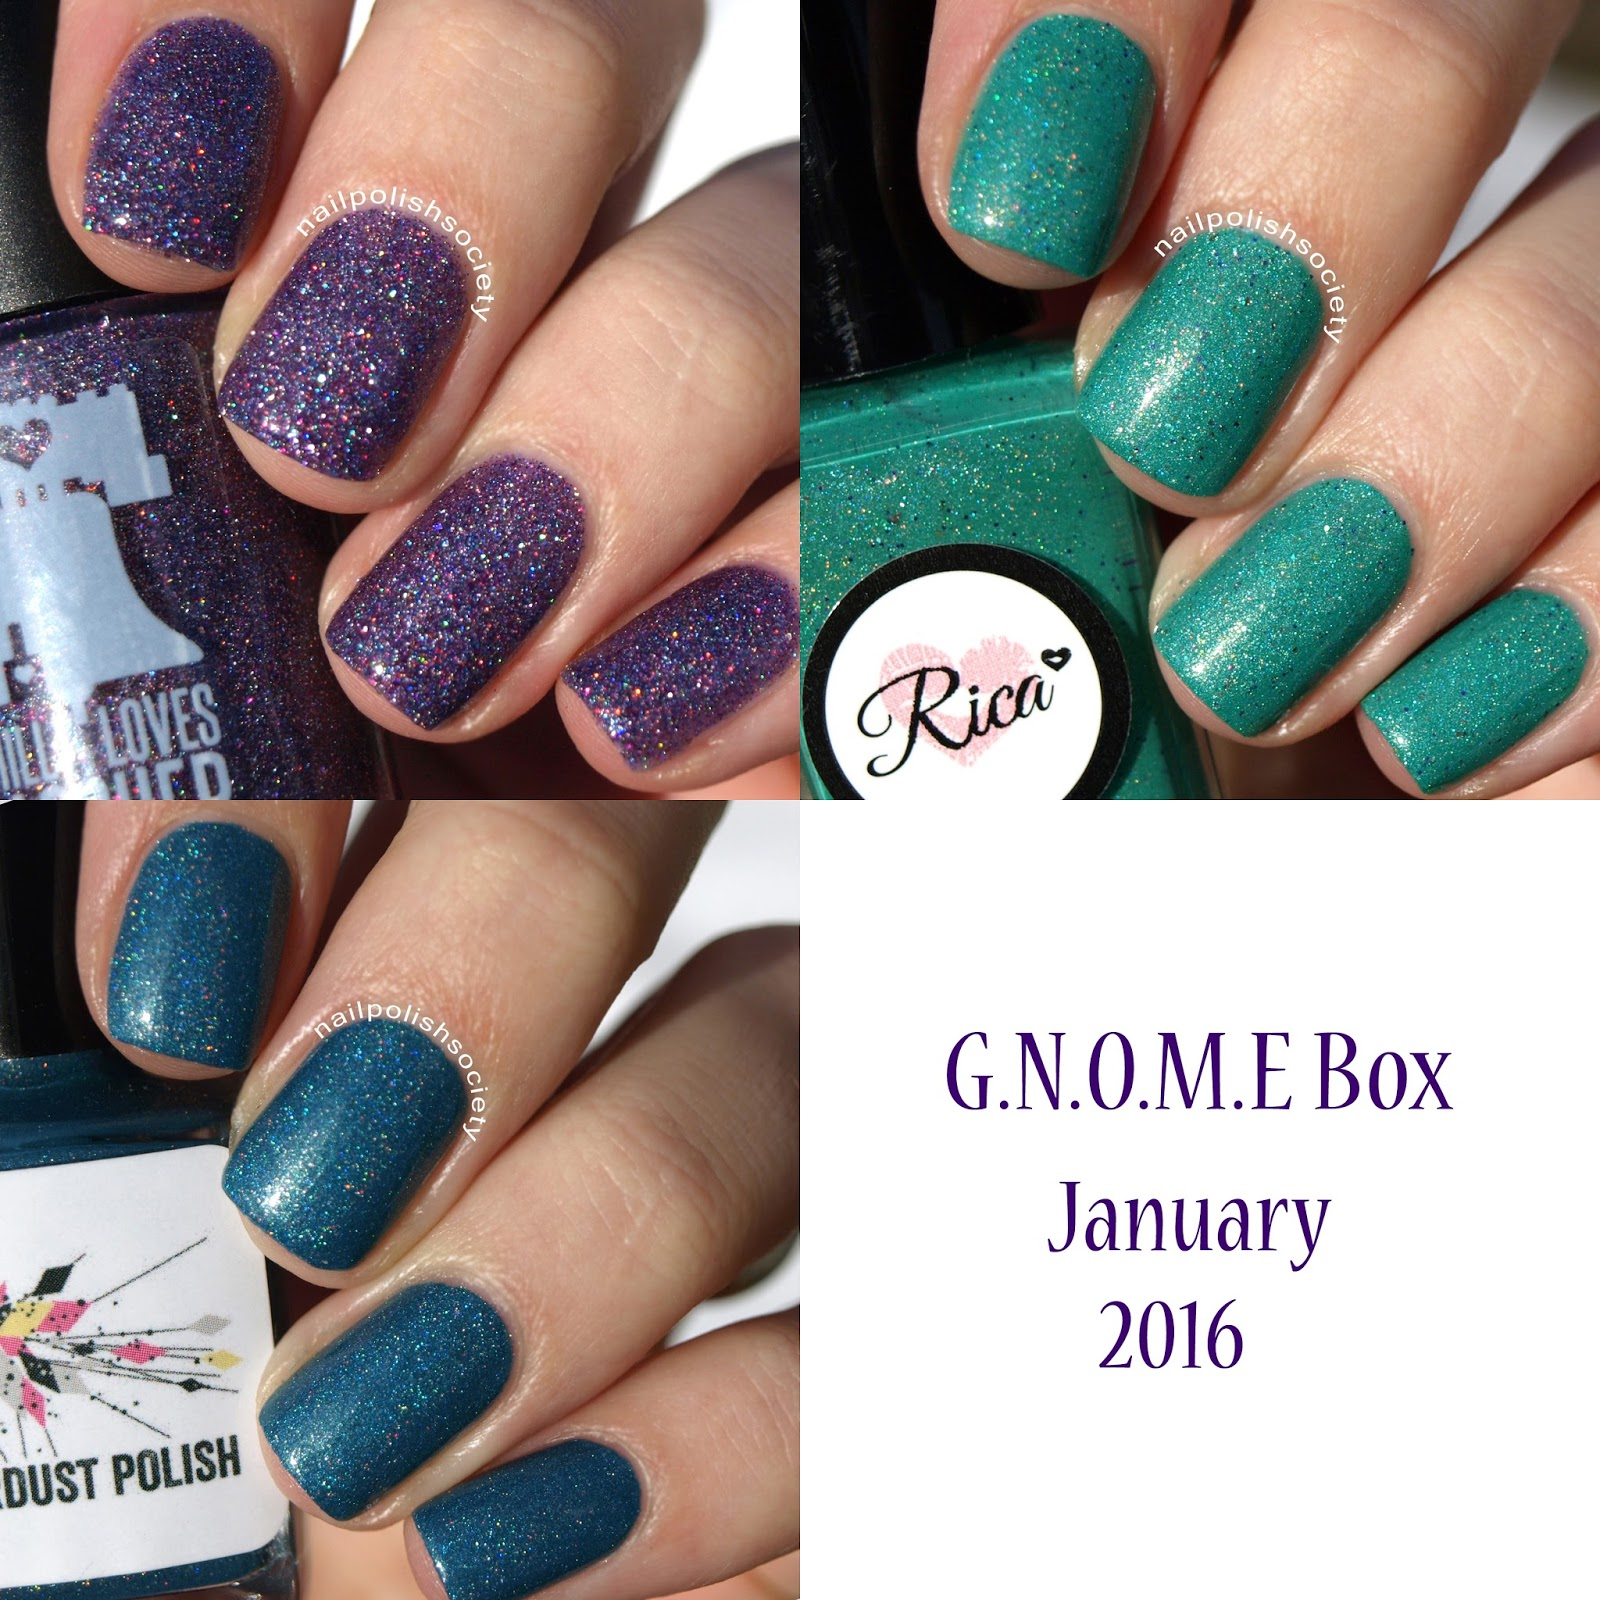 Nail Polish Society: G.N.O.M.E. Box January 2016